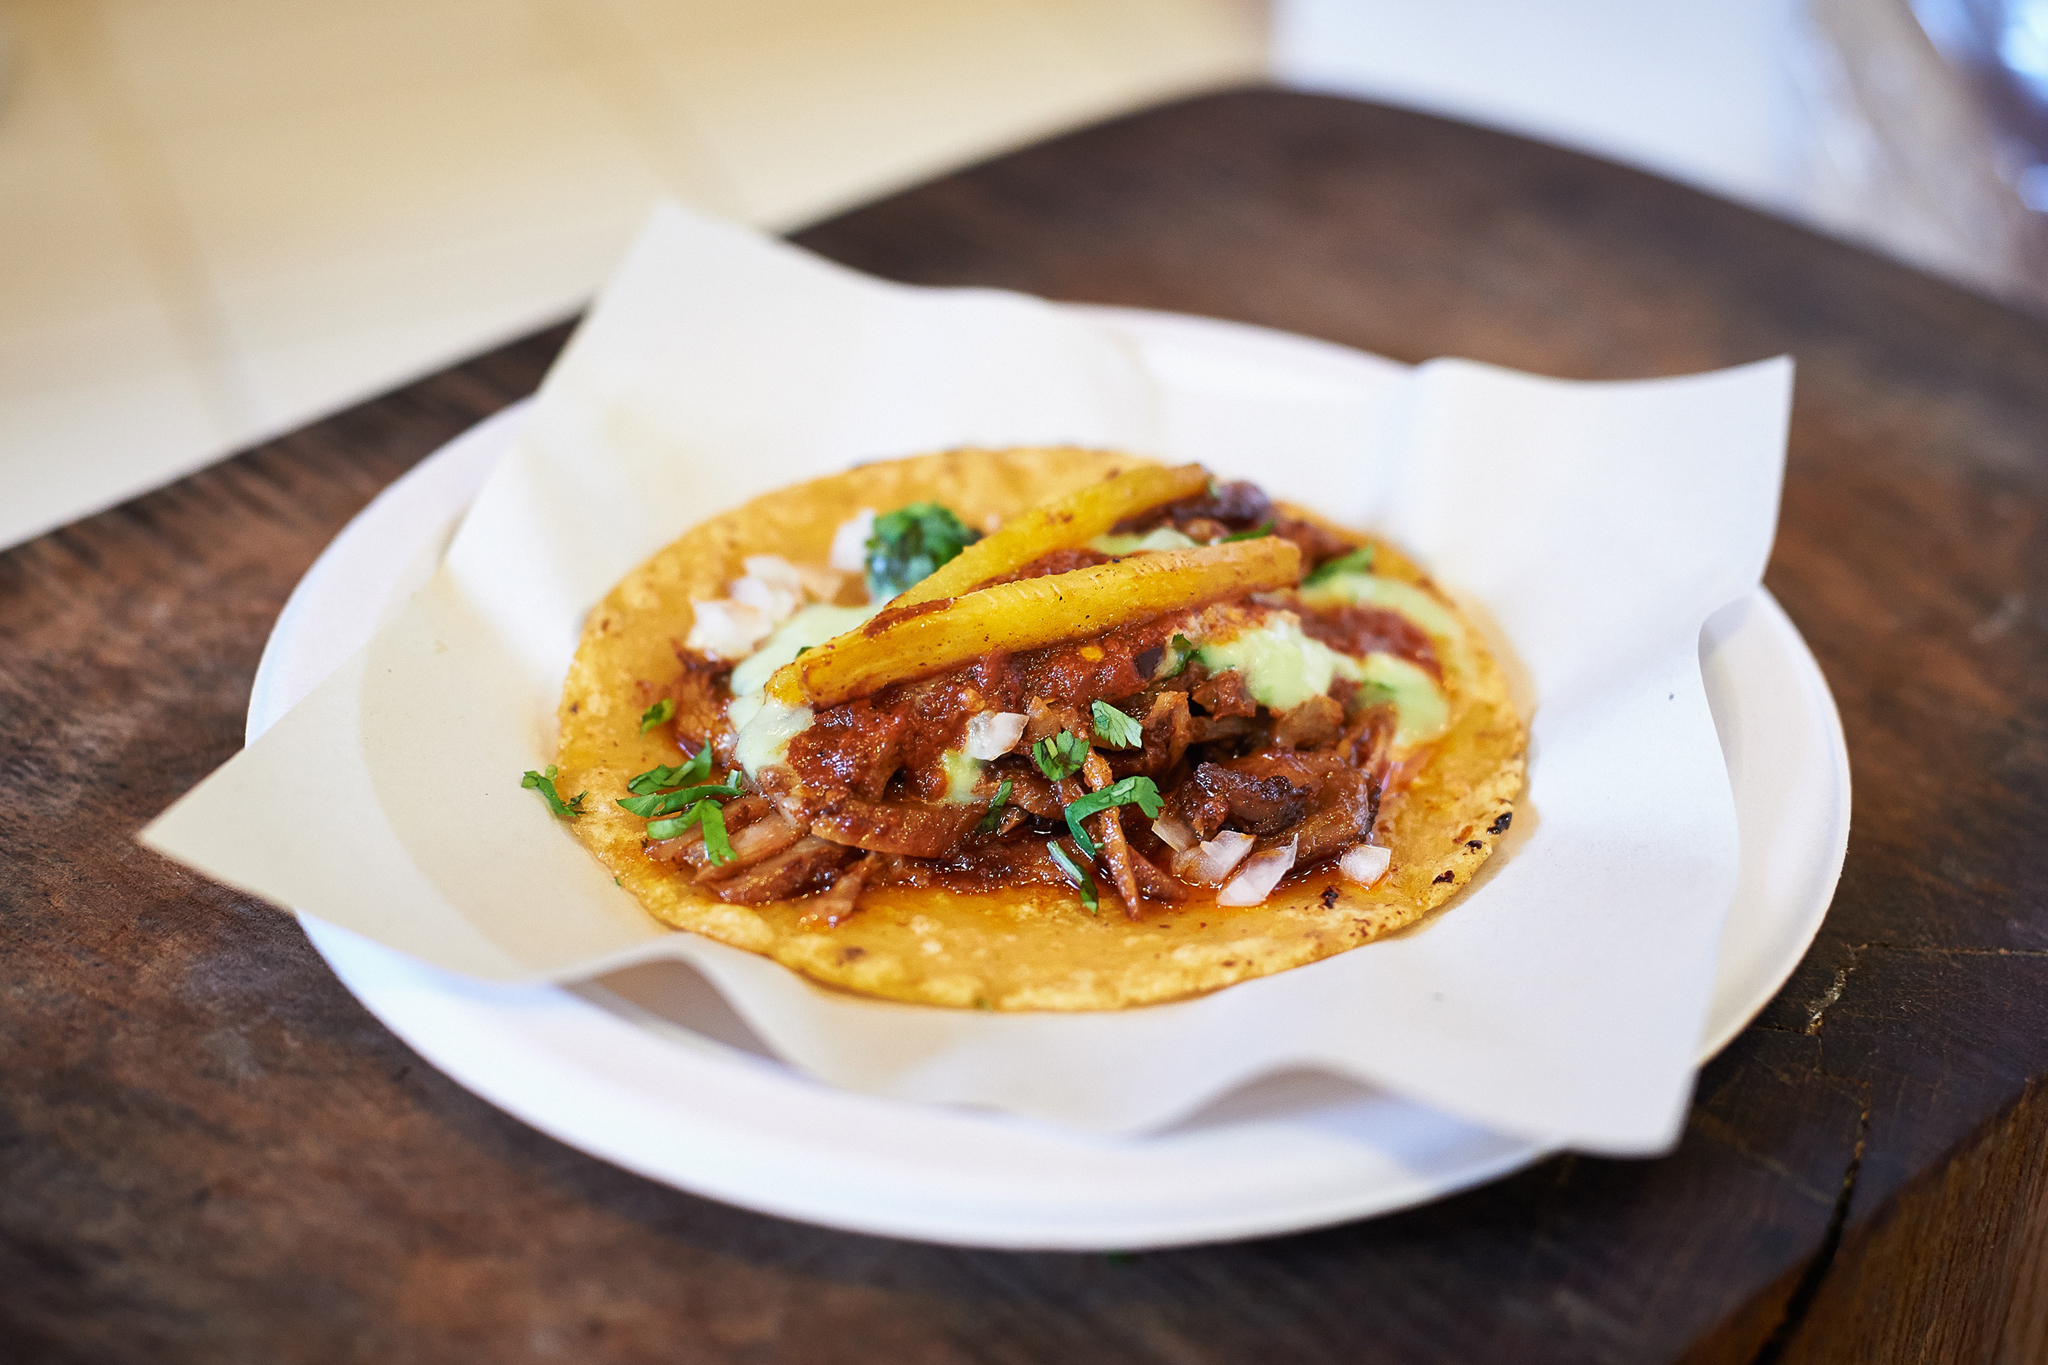 Adobada taco at Los Tacos No 1